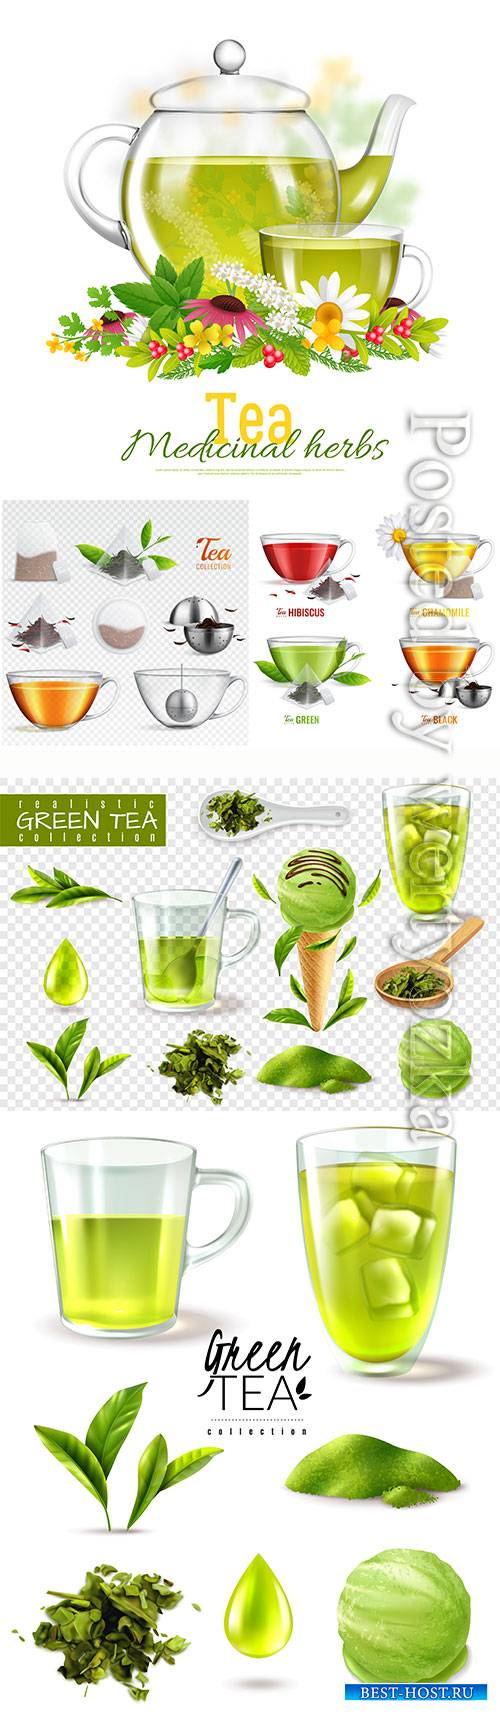 Fragrant tea in cups vector illustration